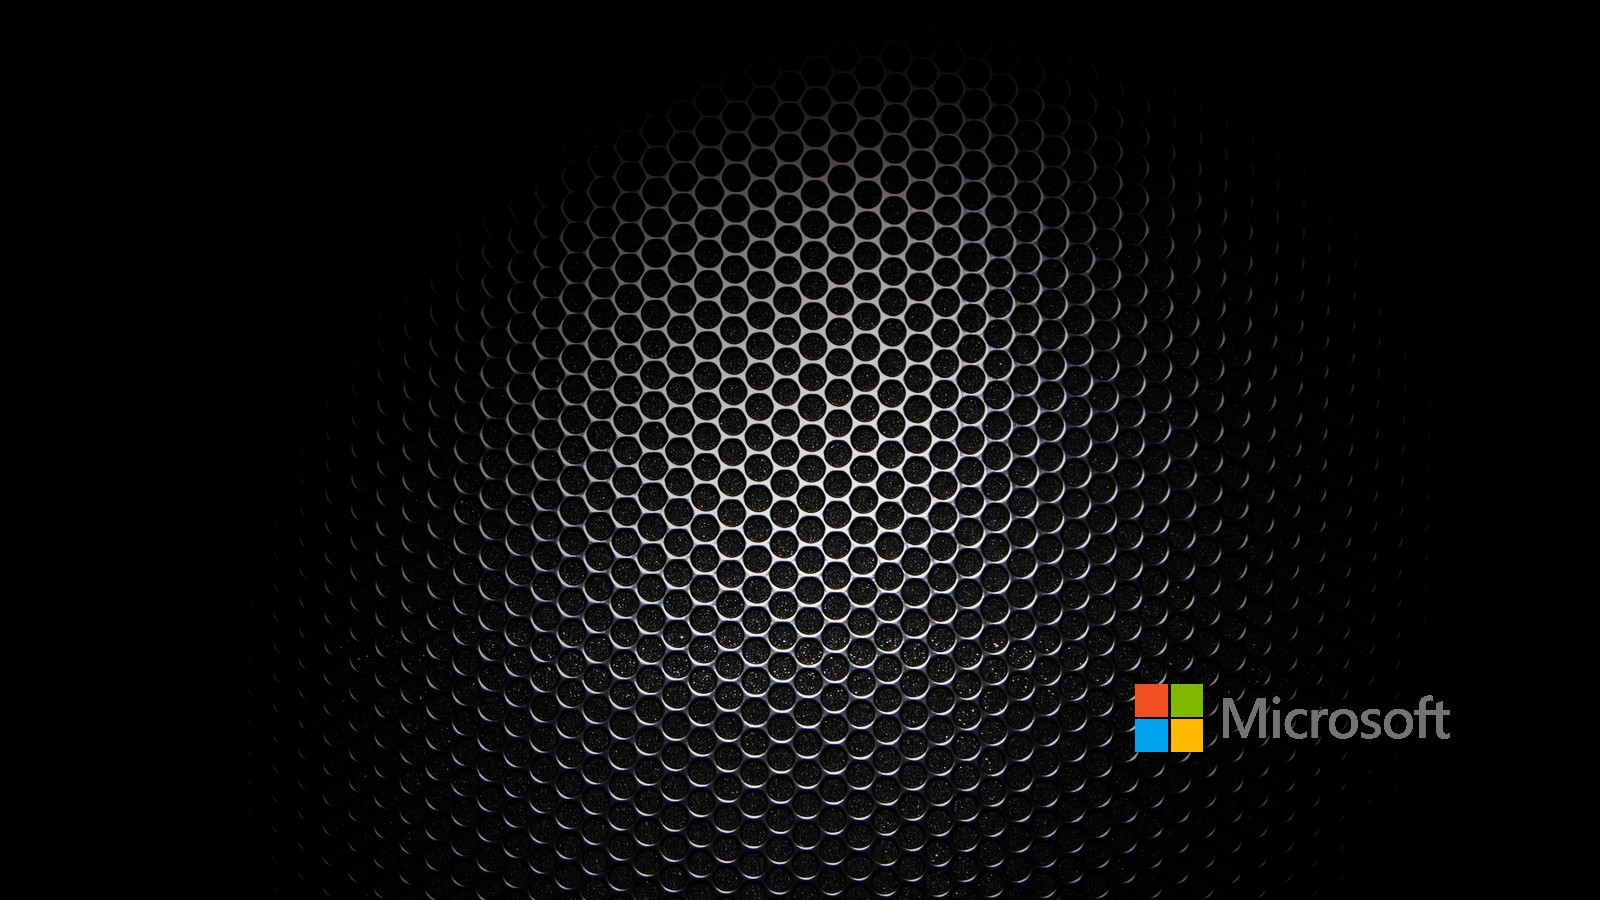 Microsoft Wallpaper Windows 7 Free 10041 HD Pictures | Best .